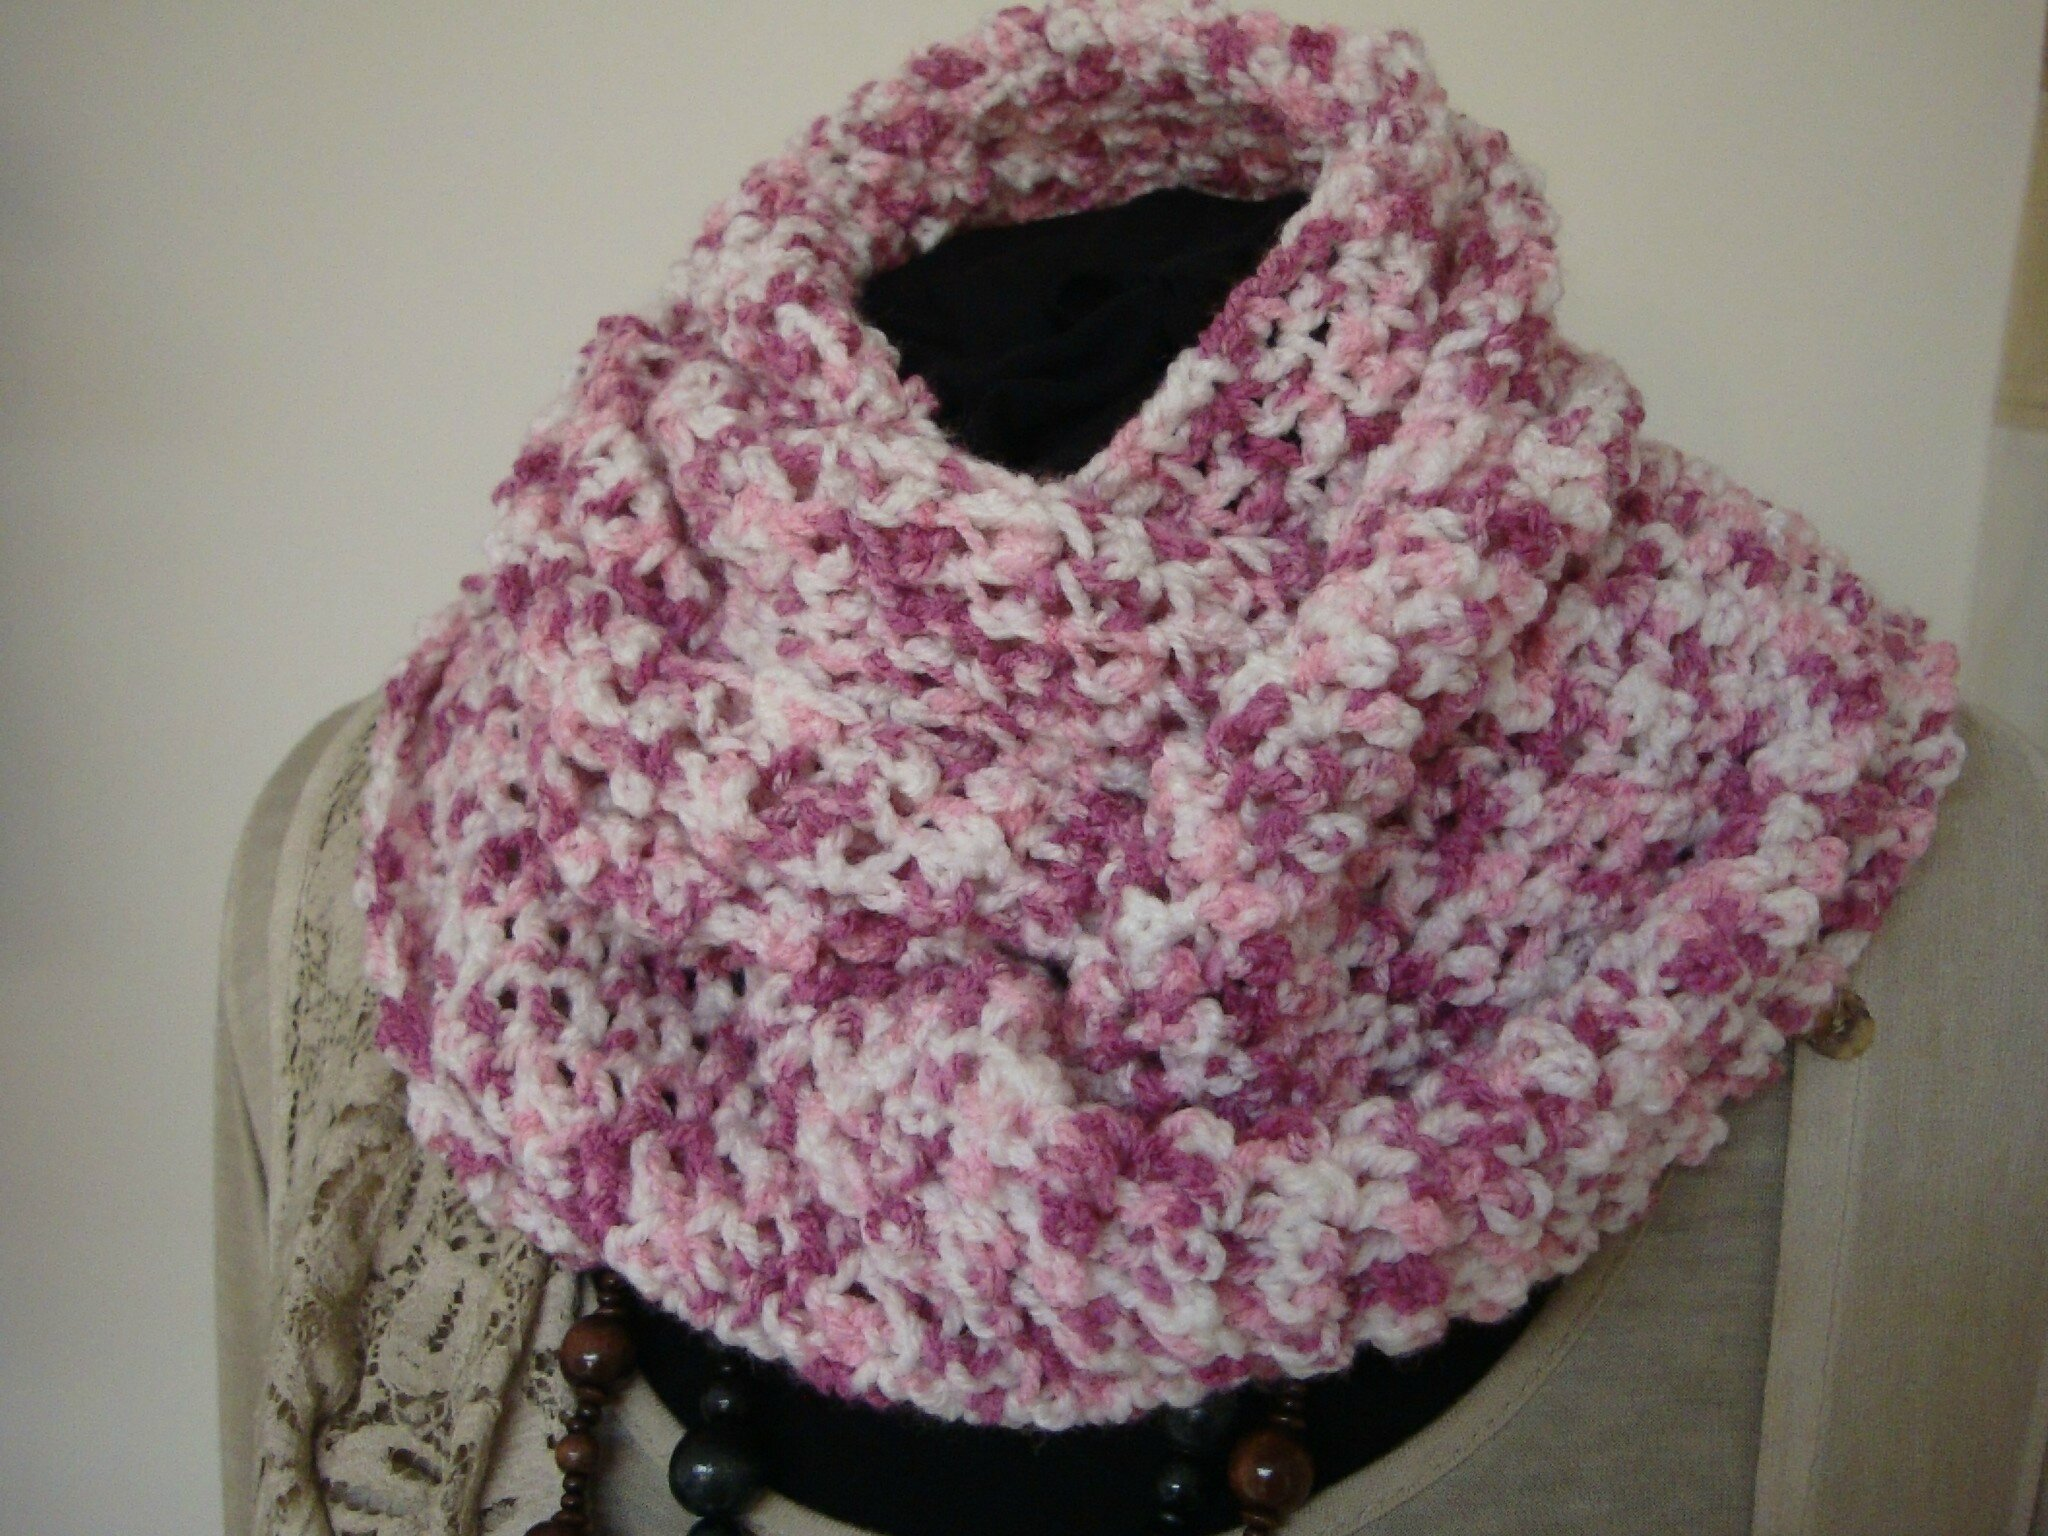 SNOOD ROSE ET BLANC AU CROCHET